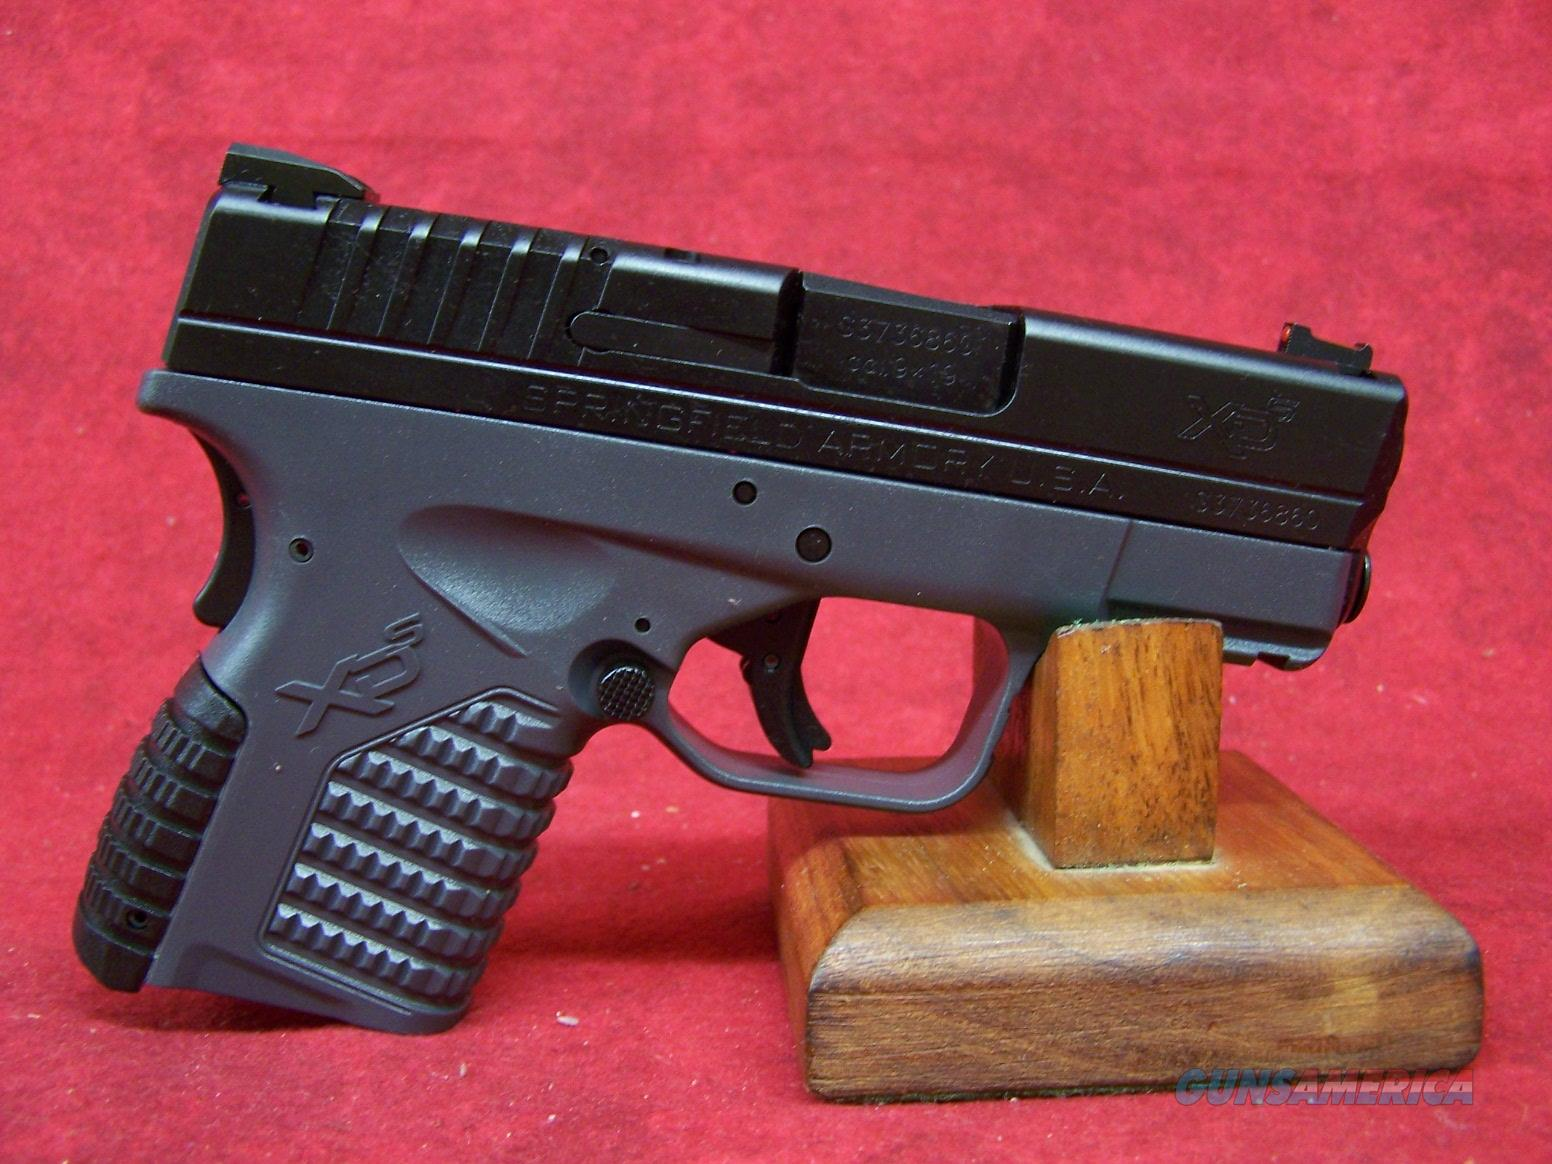 Springfield XDS 3.3 Single Stack 9mm 3.3 Inch Barrel (XDS9339YE)  Guns > Pistols > Springfield Armory Pistols > XD-S